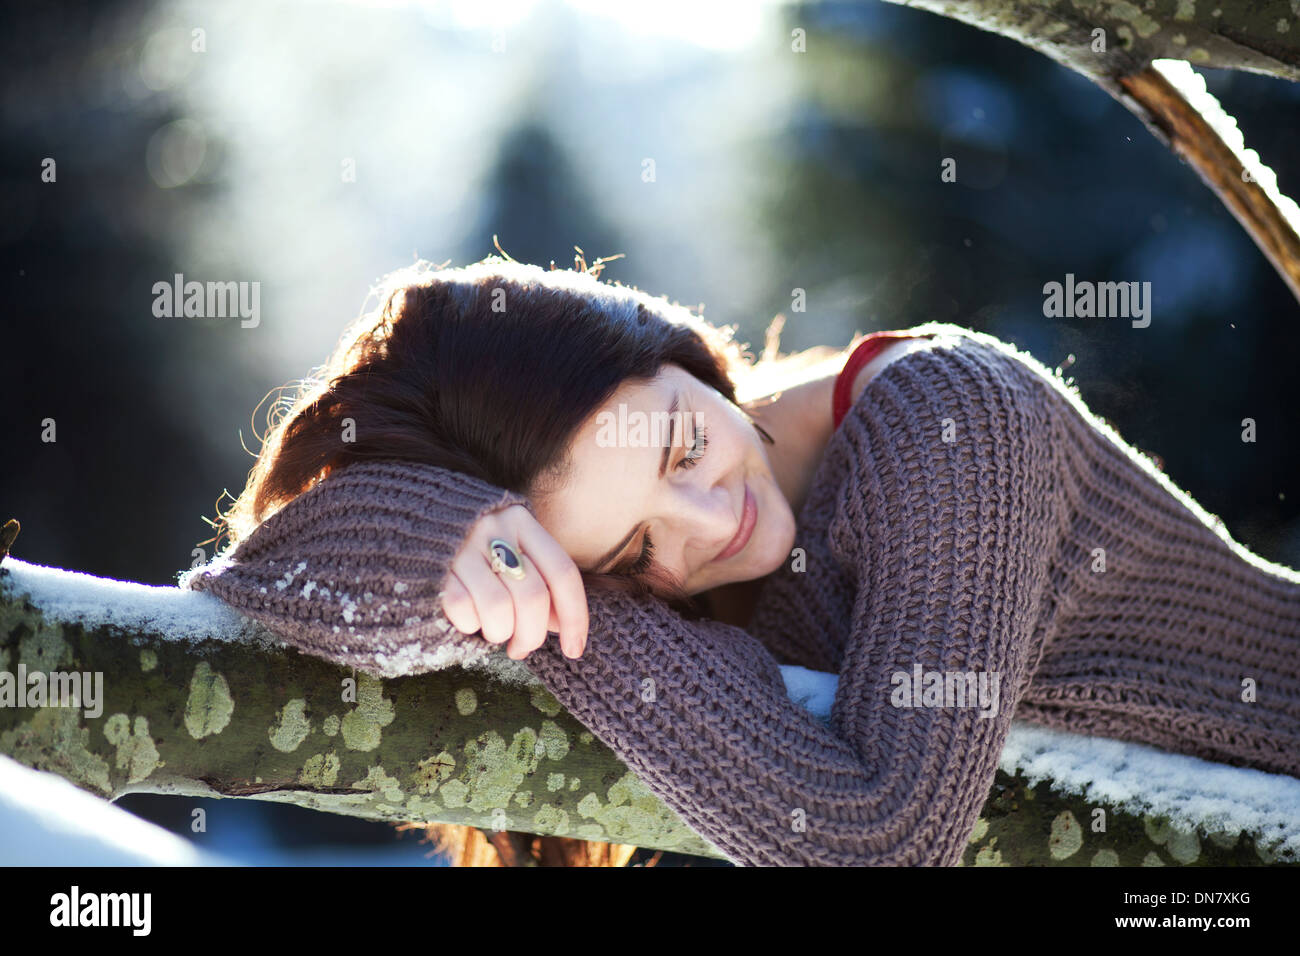 Young woman lying on a tree trunk in snow Stock Photo